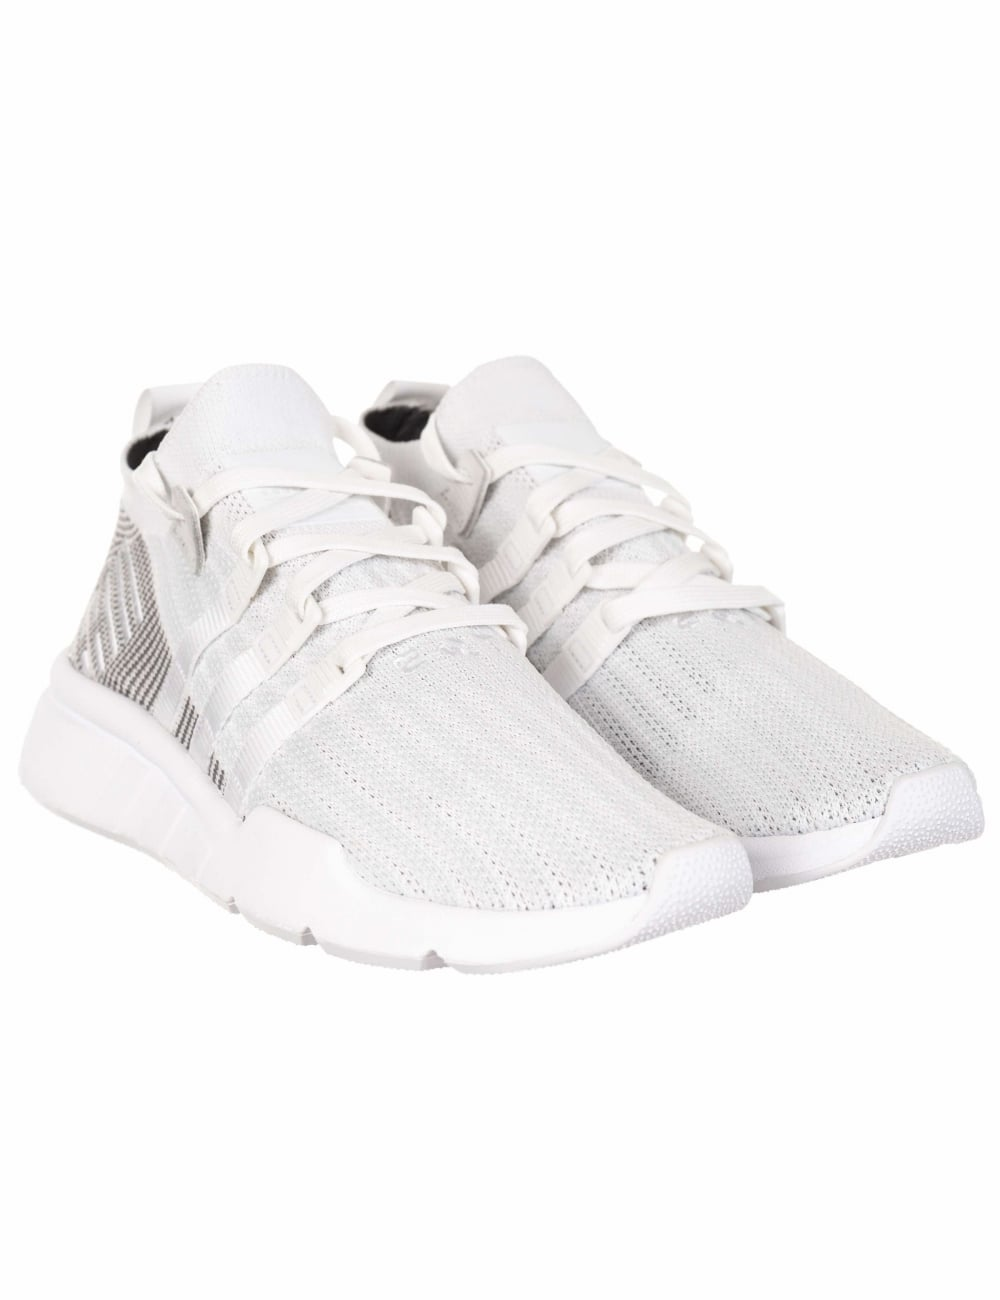 Adidas Originals EQT Support Mid ADV Primeknit Trainers - Mid White Grey -  Footwear from Fat Buddha Store UK fdeae0a28959